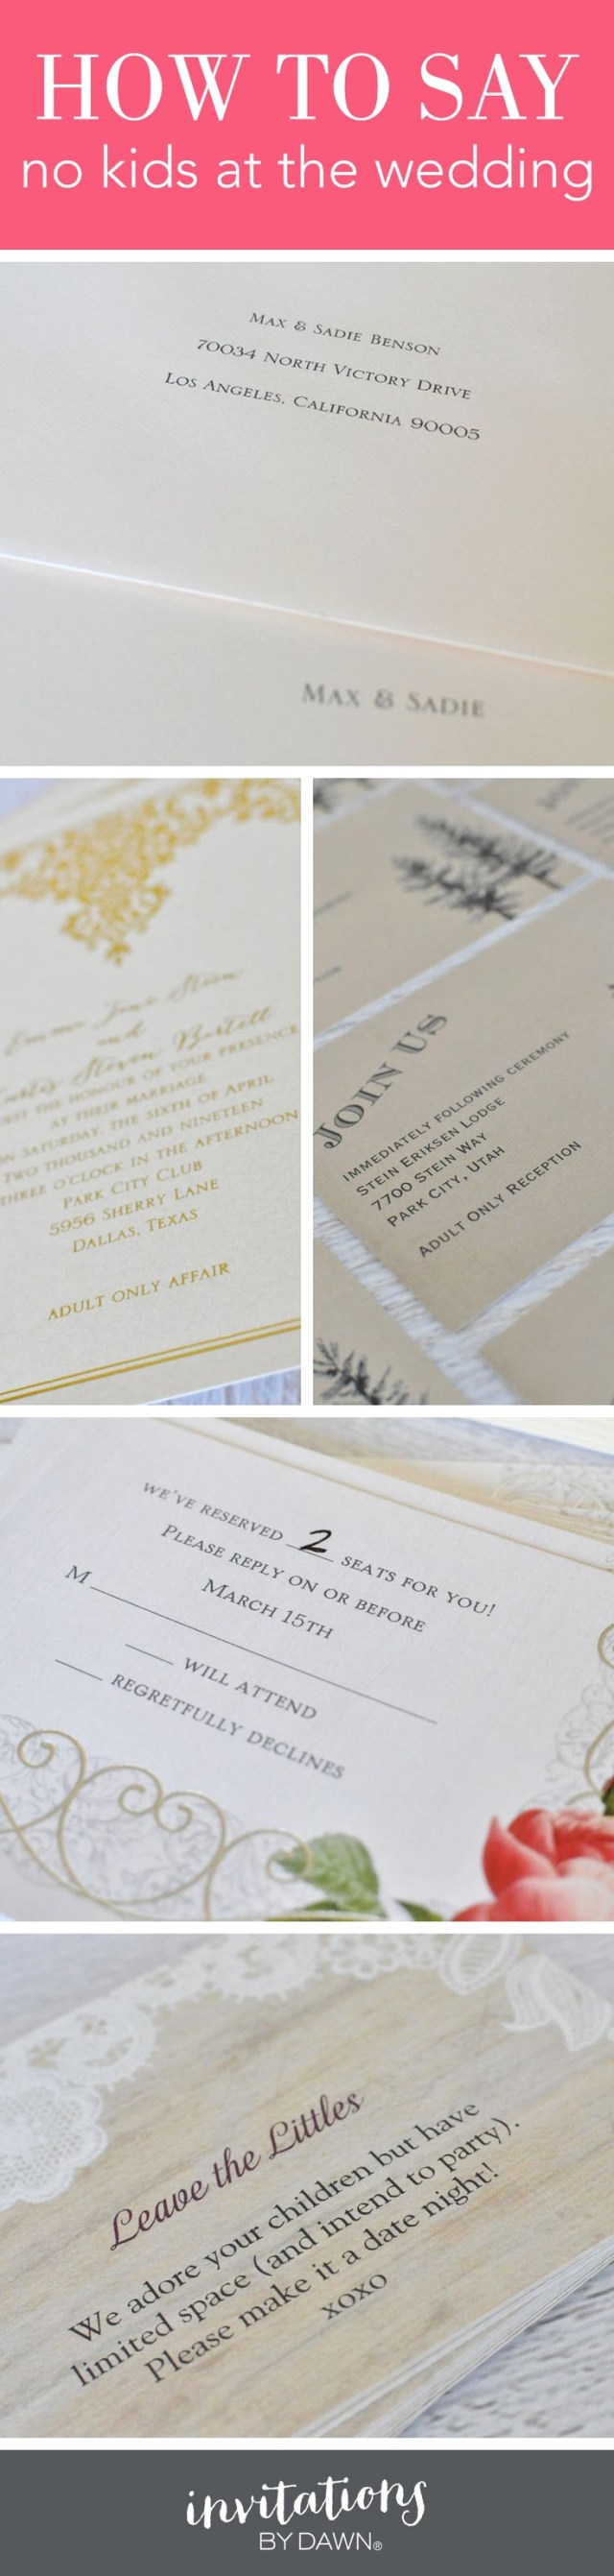 Hipster Wedding Invitations Create Own Wedding Invitations Online Free Luxury Excellent Hipster